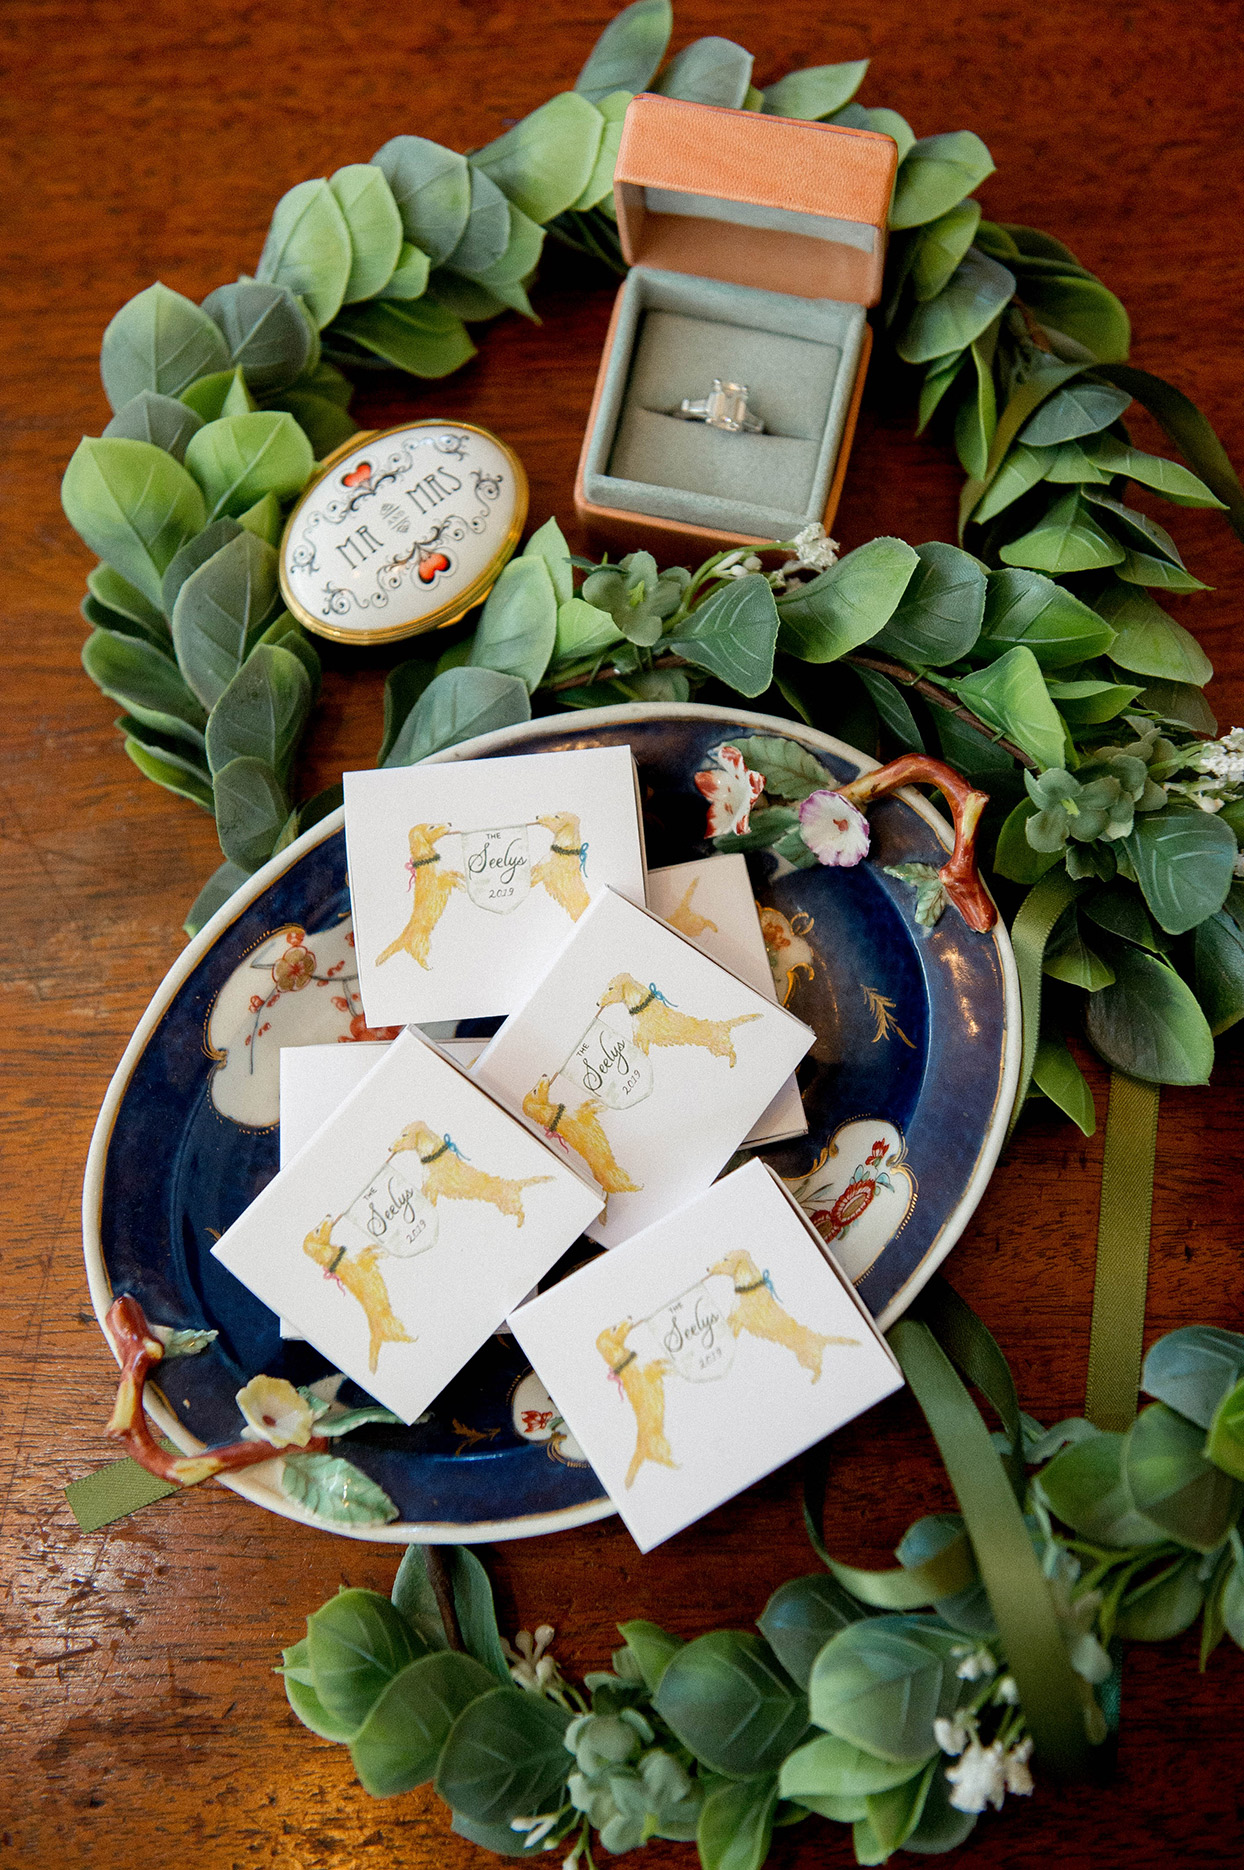 personalized matchbooks in ornate dish for wedding